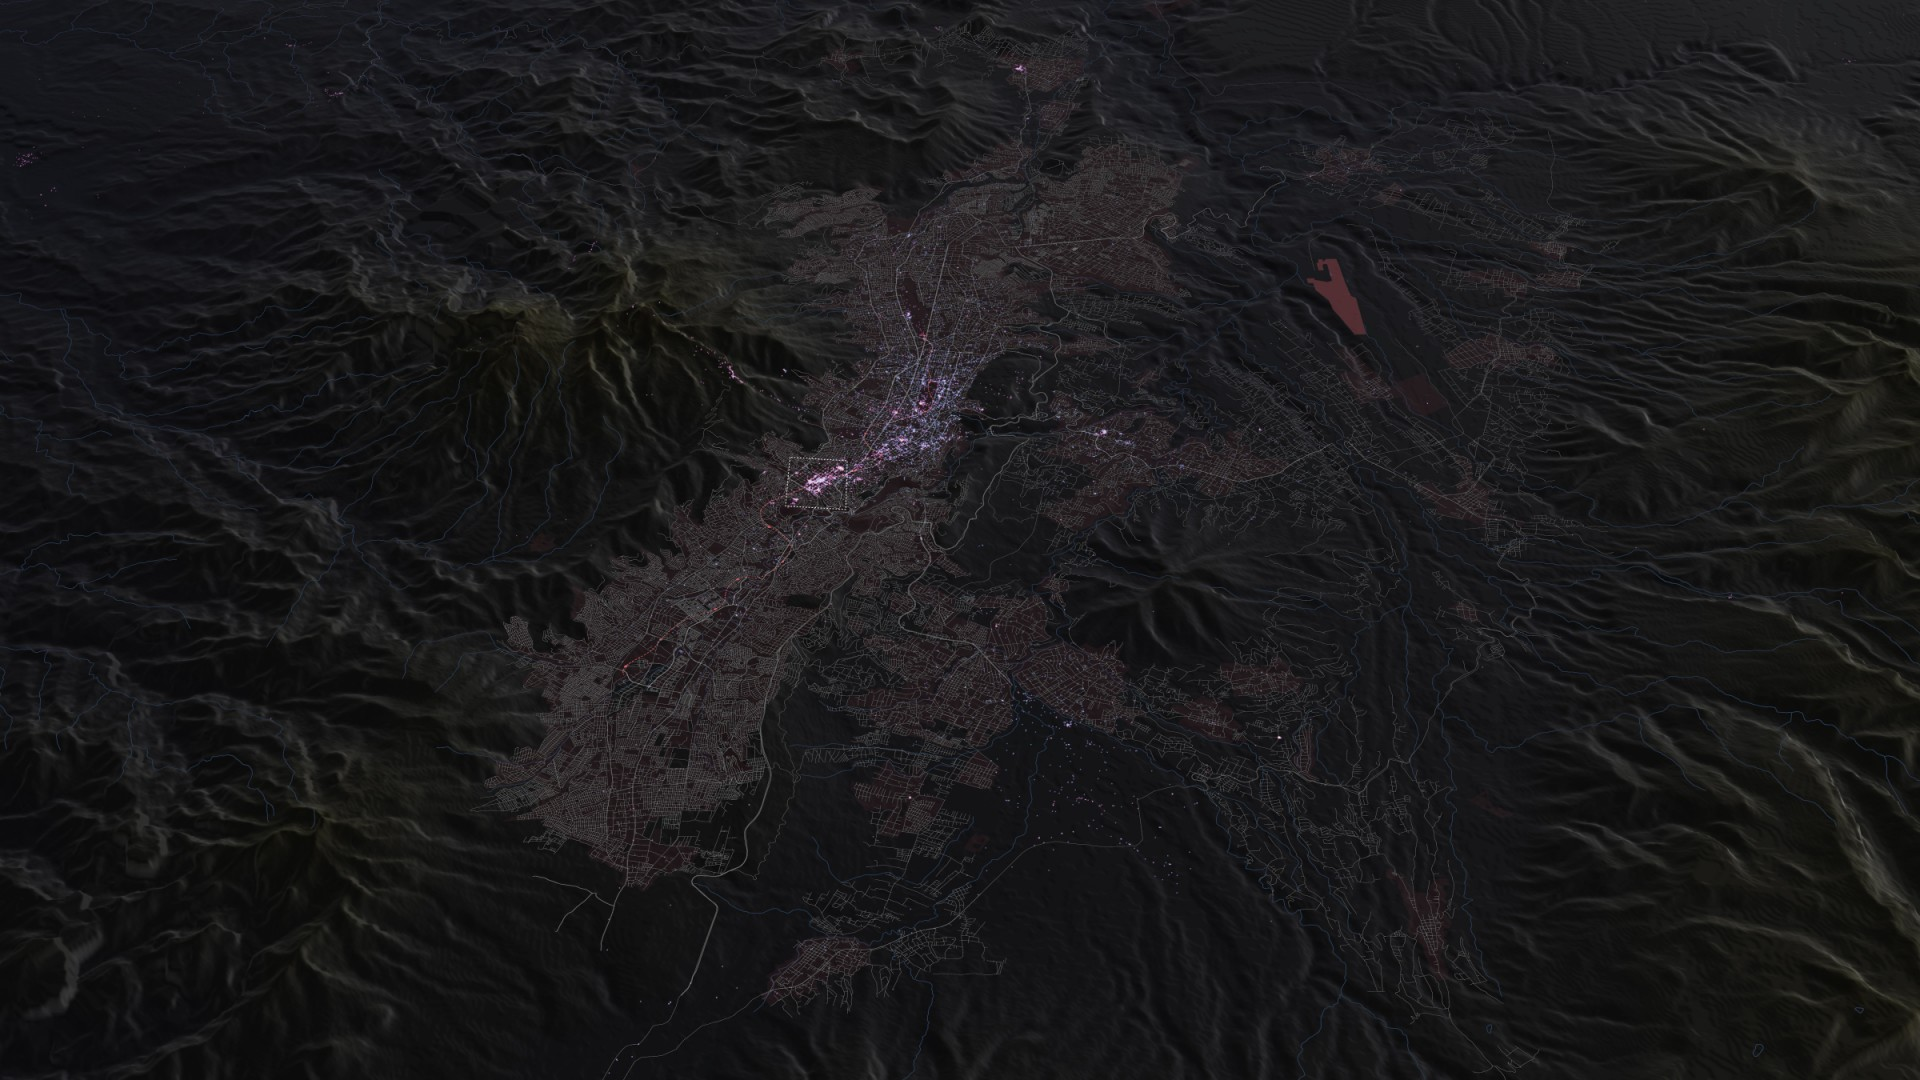 Mapping Imageability: Quito, Ecuador (geotagged photos: pink-flickr, purple-instagram)